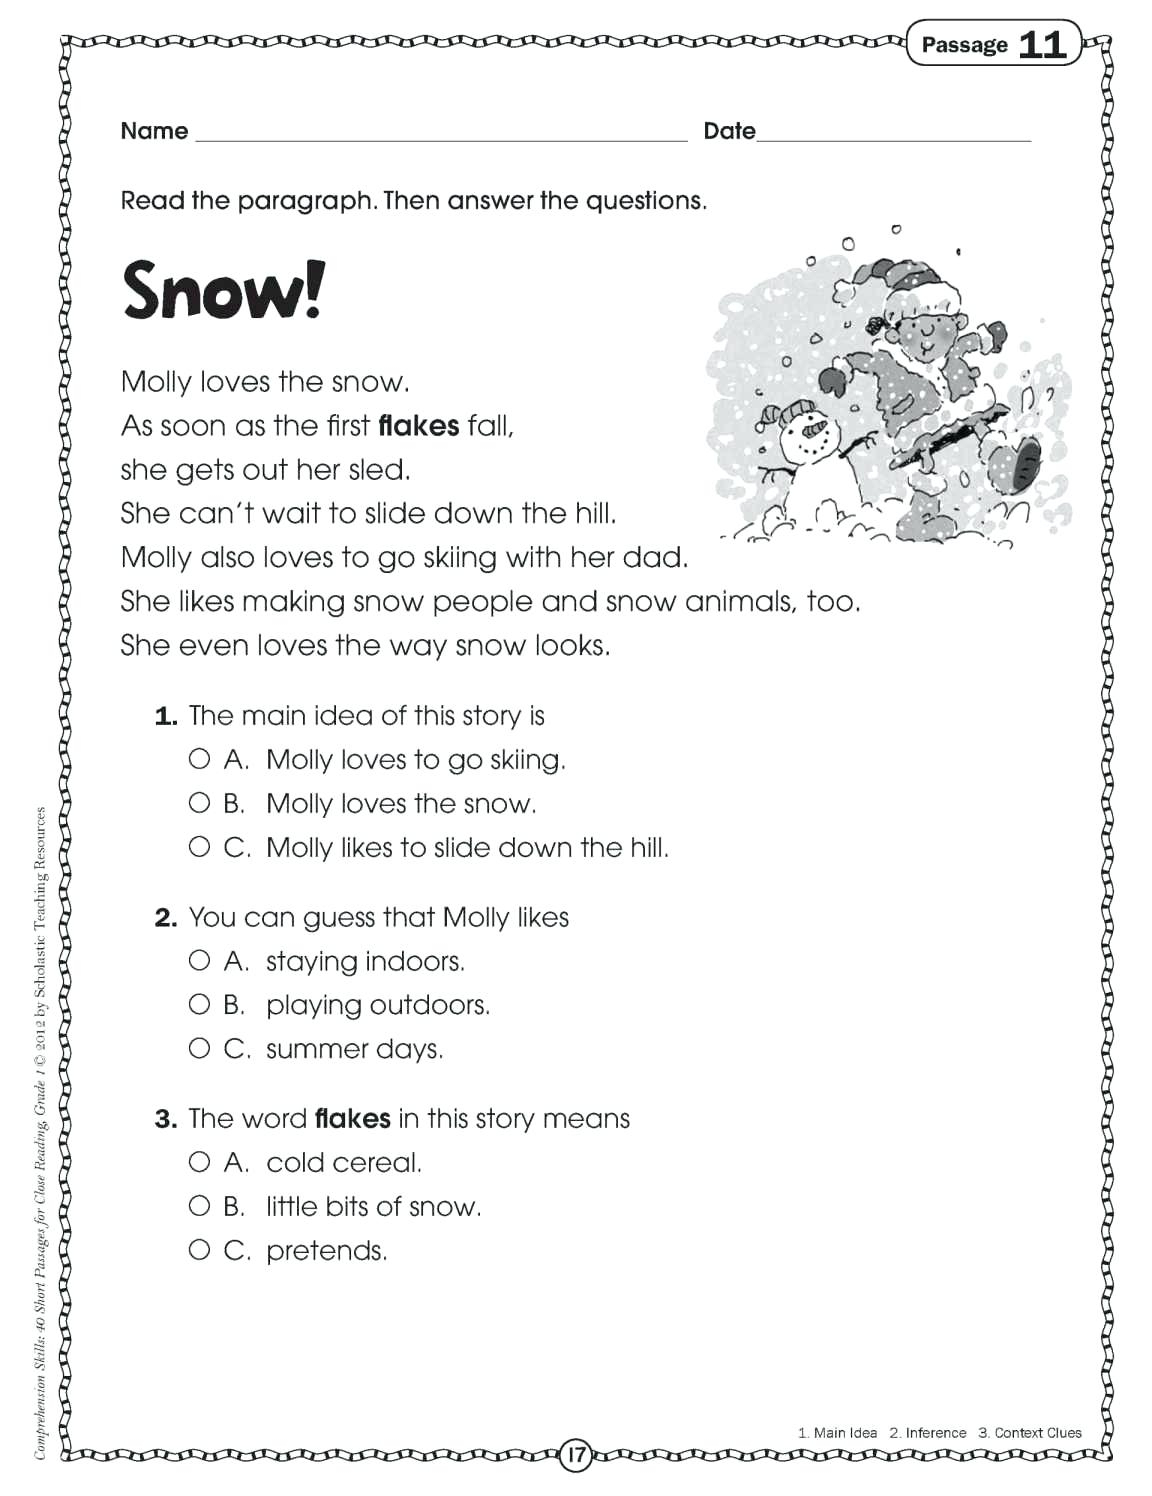 Comprehension Activities For 2Nd Grade Free Printable Reading | Free Printable Reading Comprehension Worksheets For 3Rd Grade